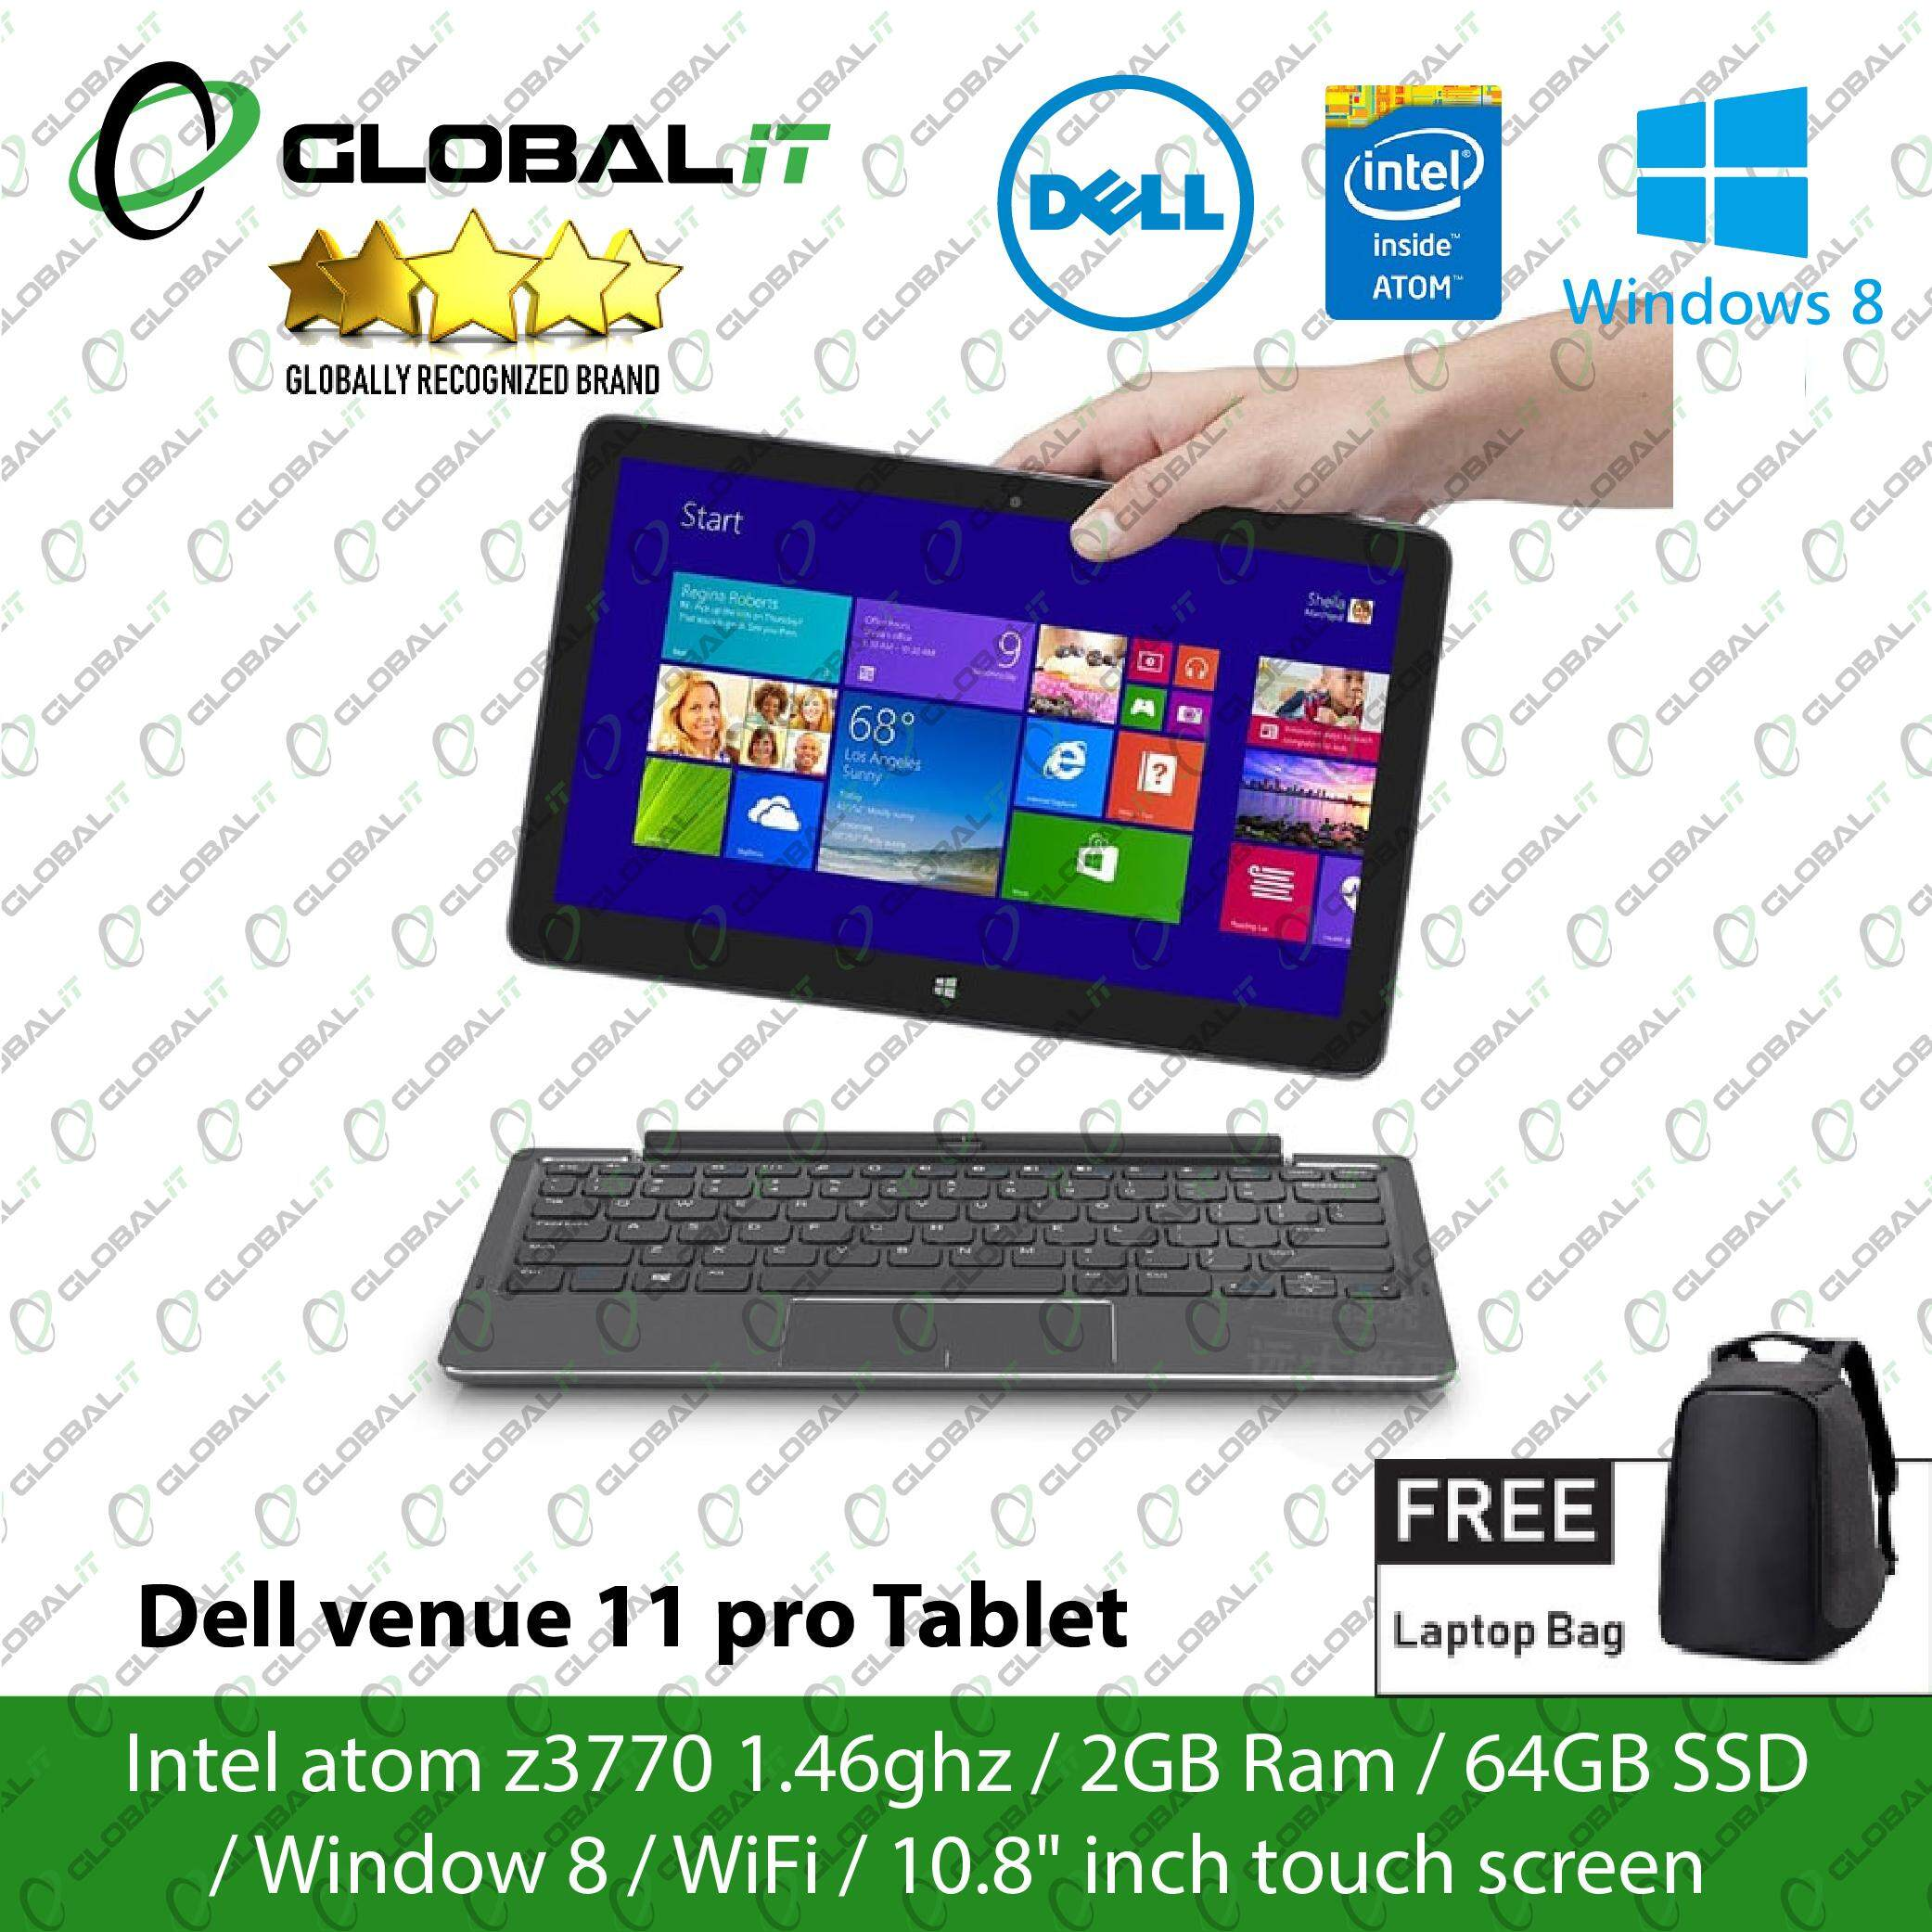 (Refurbished Tablet) Dell Venue 11 Pro Tablet / 10.8 inch LCD Touch Screen / Intel Atom Z3770 / 2GB DDR3 Ram / 64GB SSD / WiFi / Windows 8 Pro Malaysia